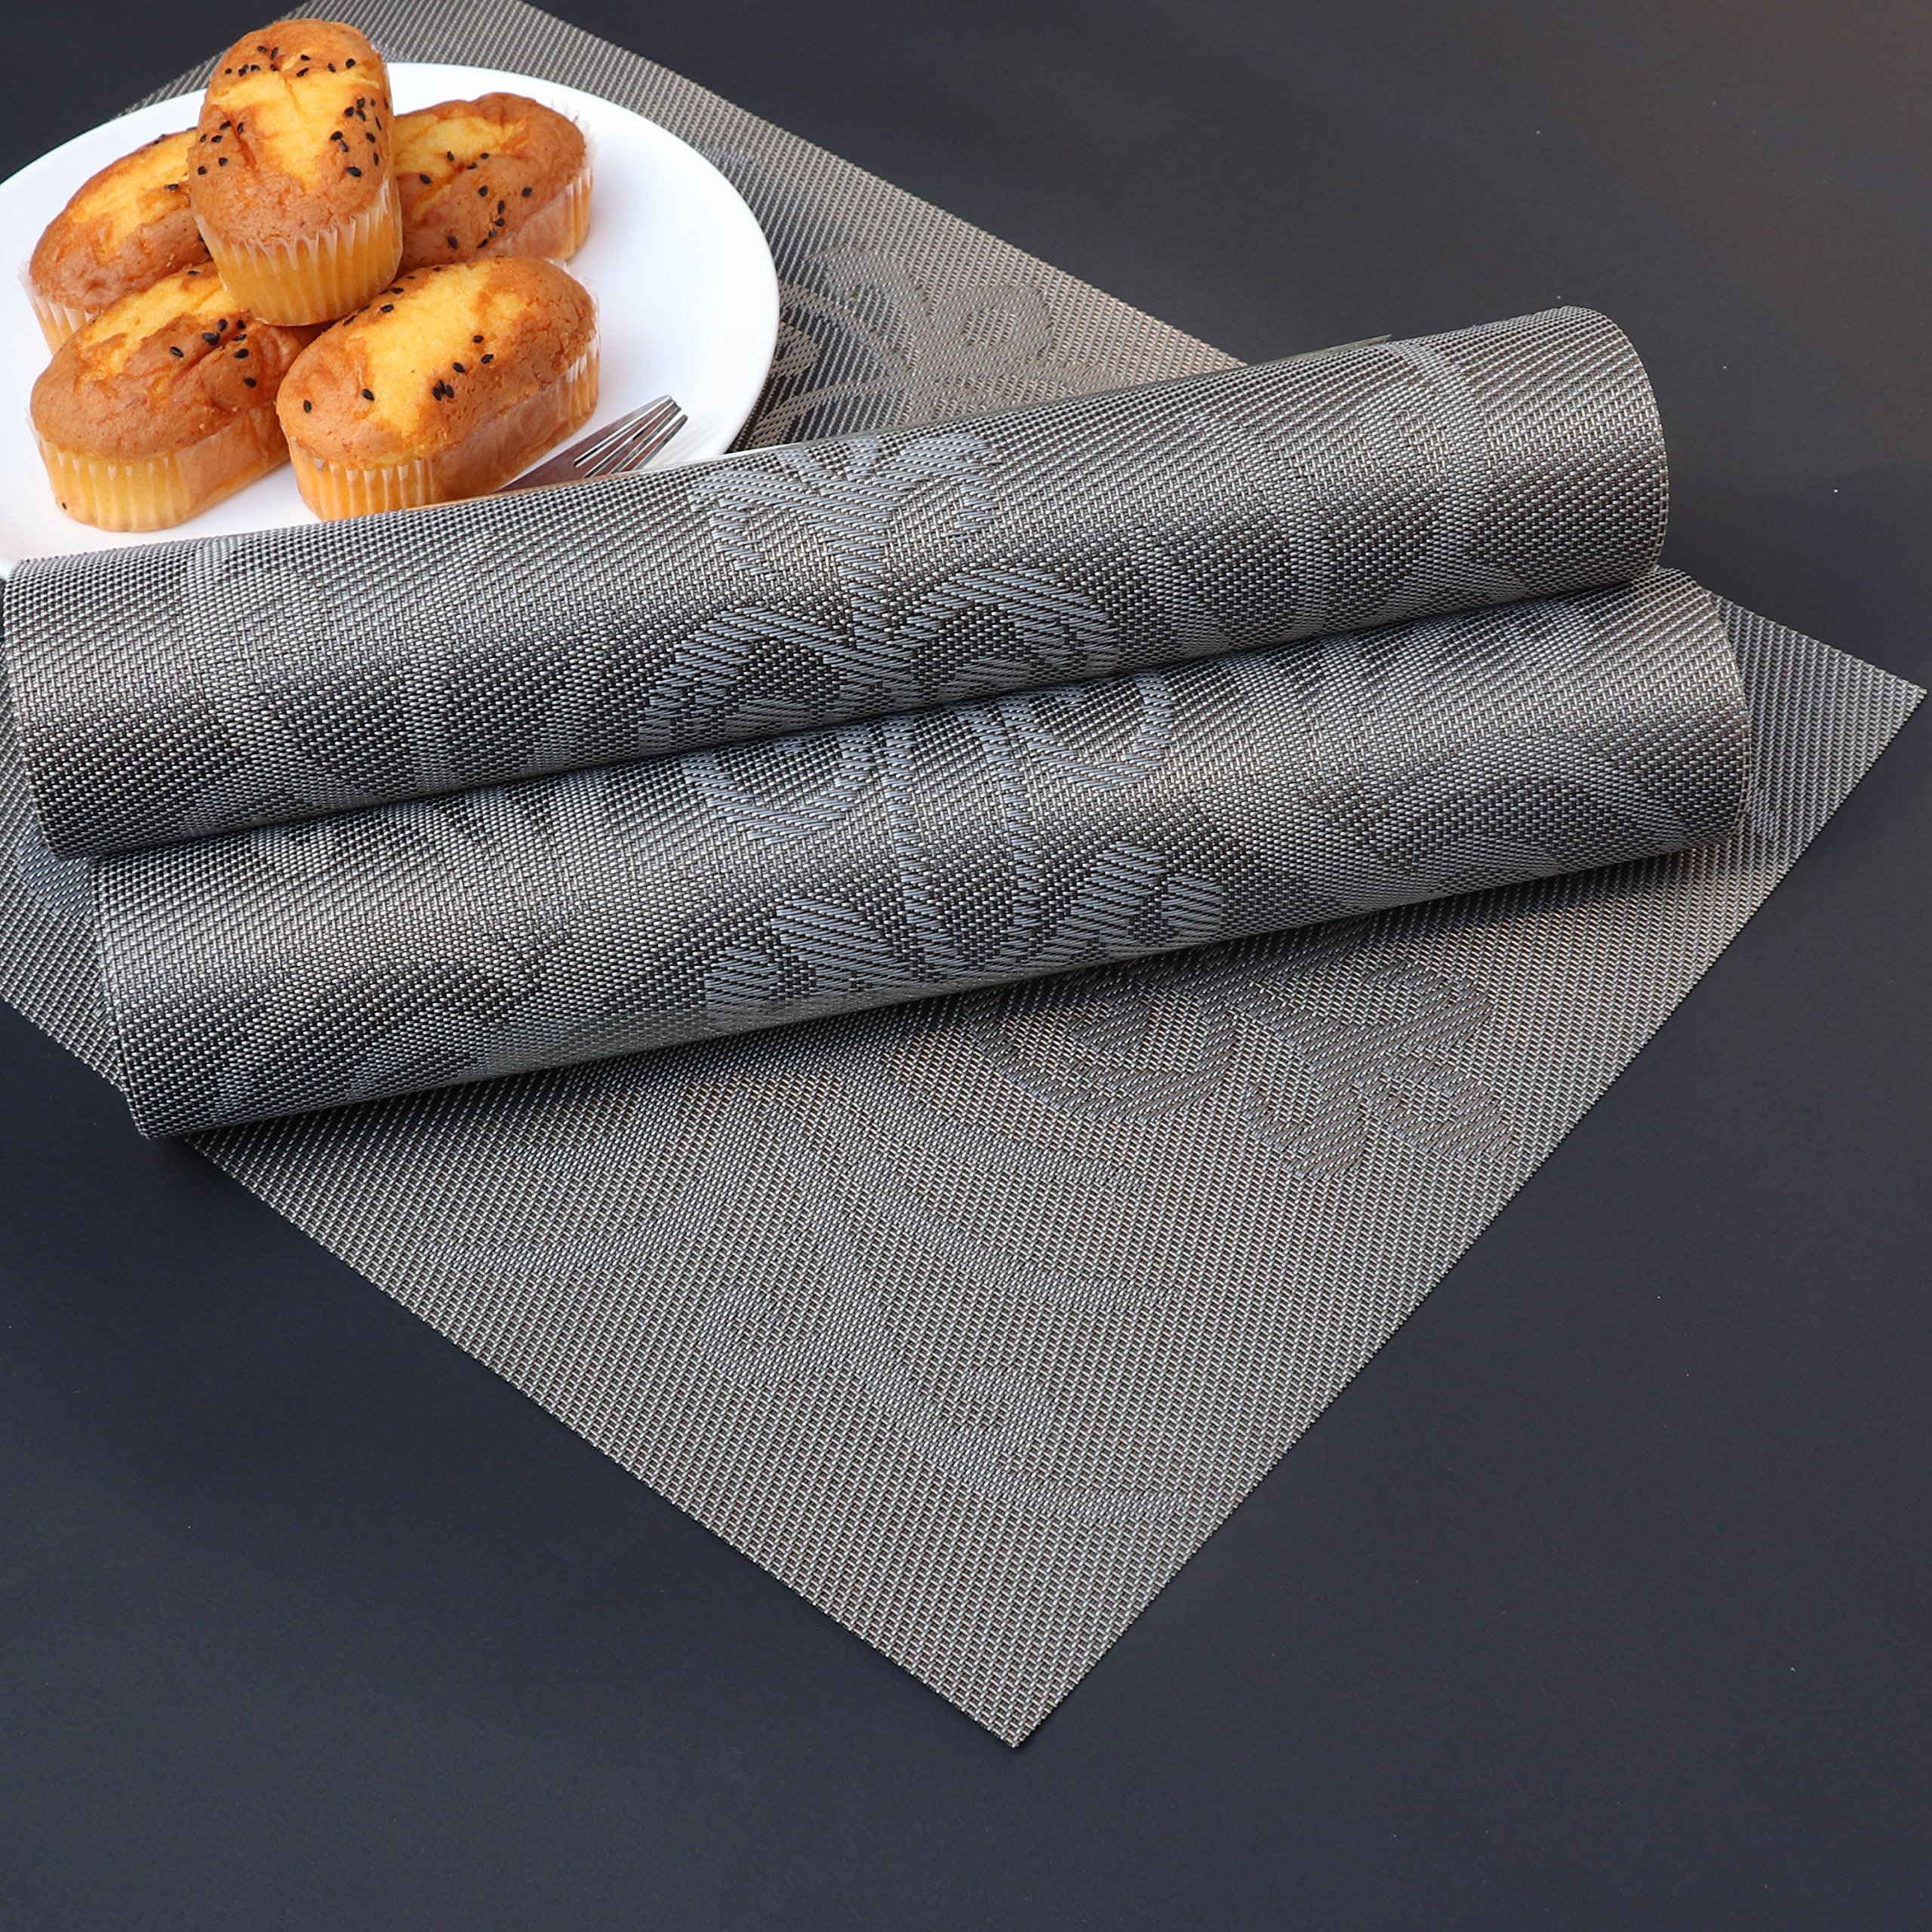 Placemats Set of 6 Heat-resistant Anti-skid PVC Placemat for Dining Table Durable Woven Vinyl Stain Resistant Table Mats Exquisite Pack by PETJAY (Image #6)